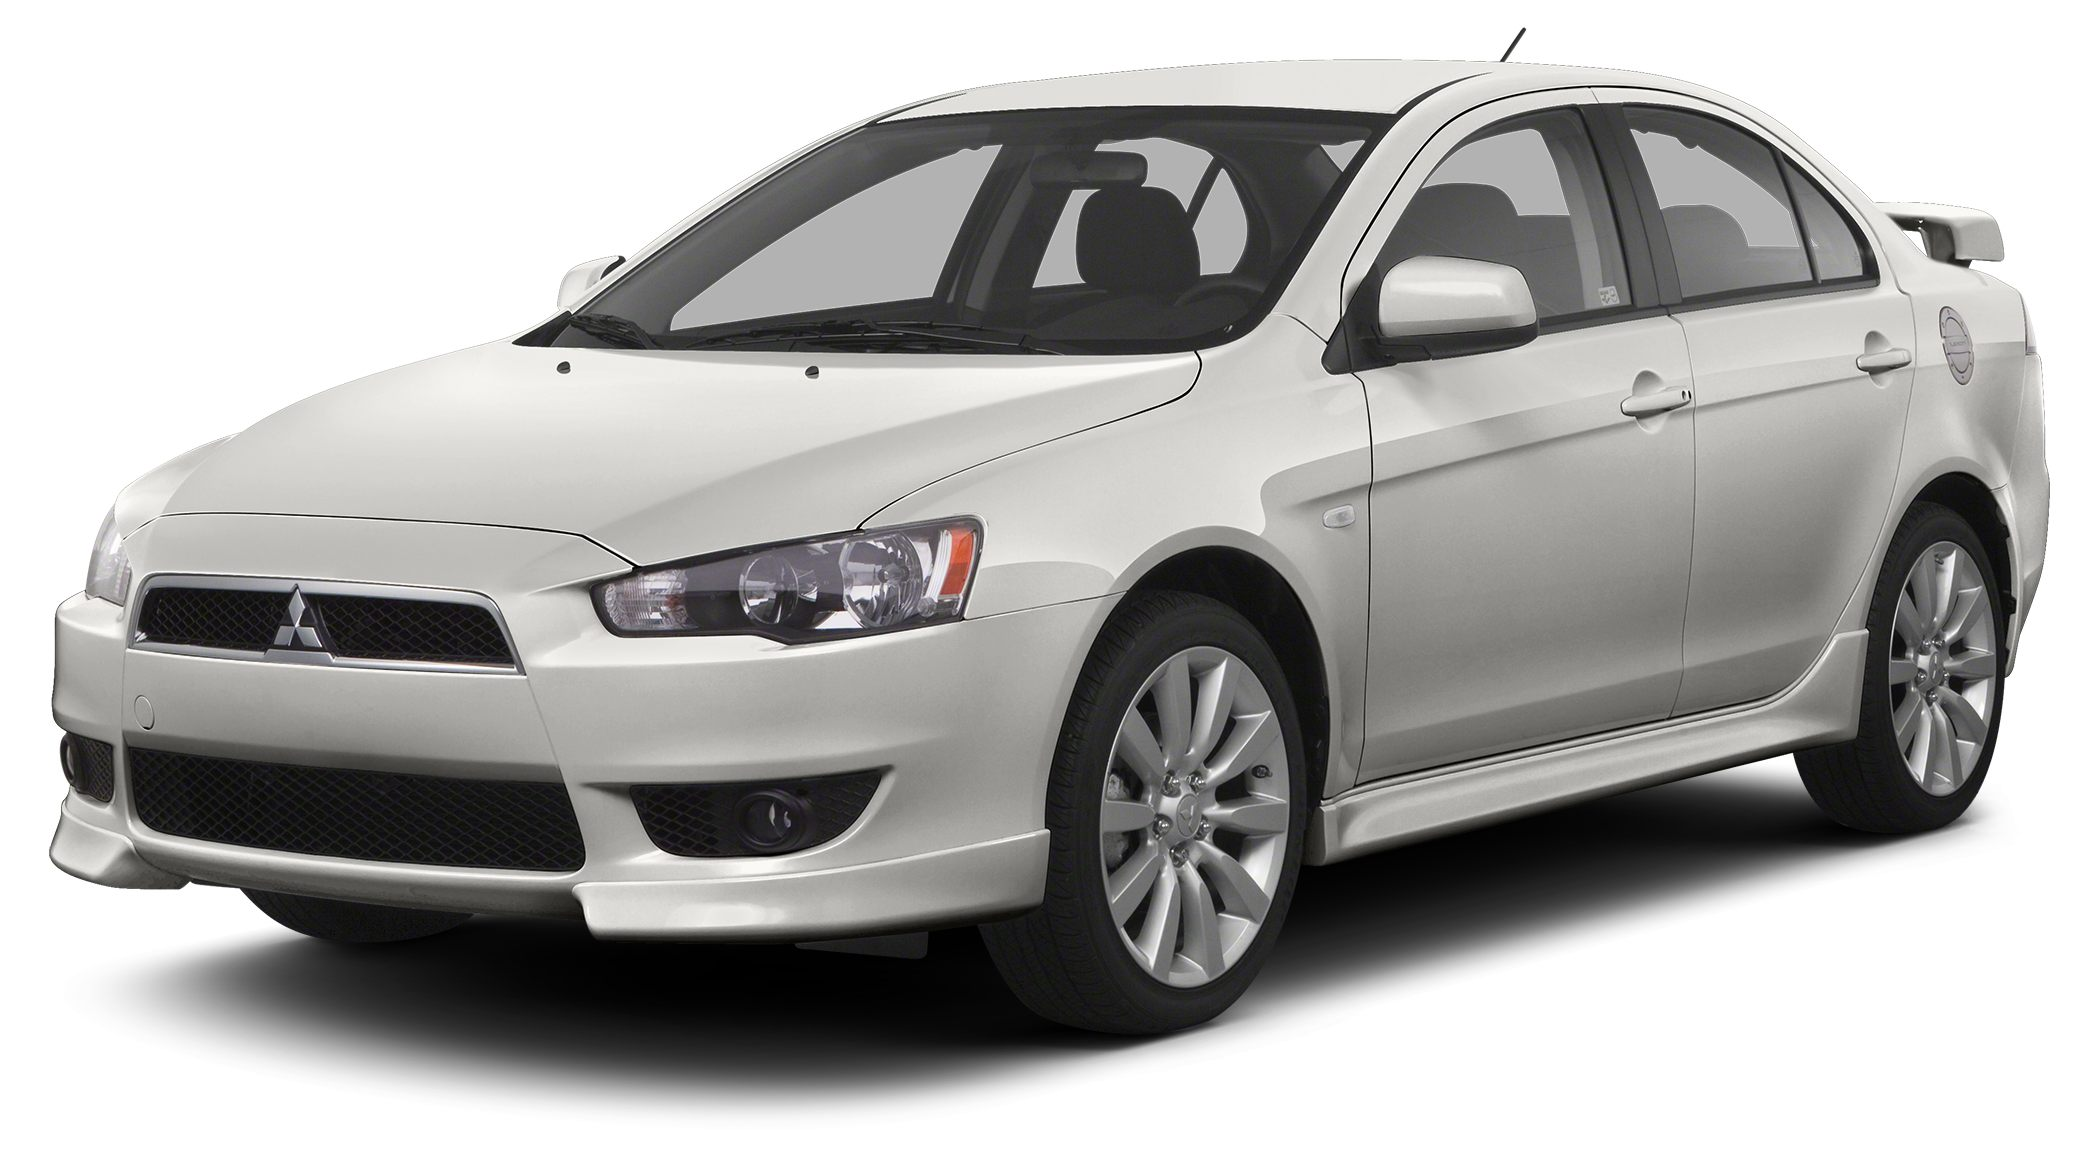 2014 Mitsubishi Lancer ES WE SELL OUR VEHICLES AT WHOLESALE PRICES AND STAND BEHIND OUR CARS